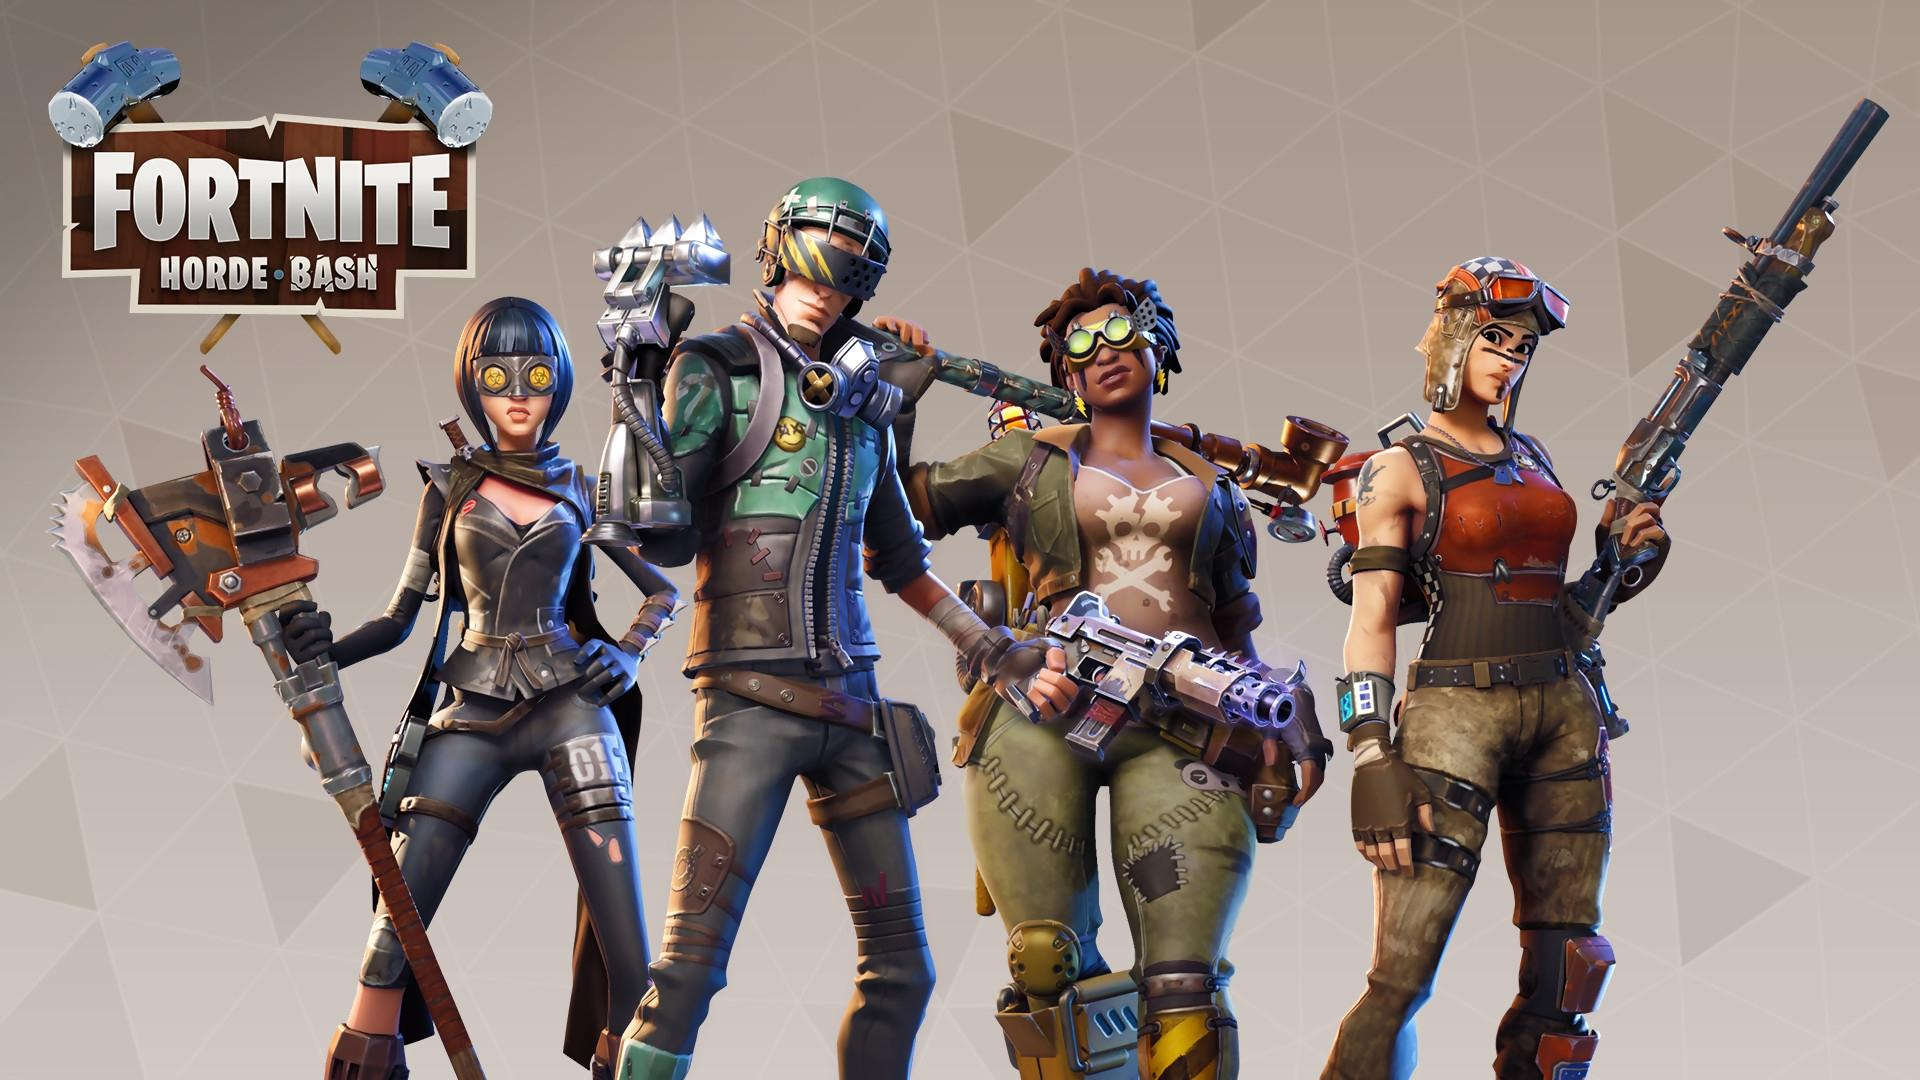 Download 1920x1080 Fortnite, Heroes, Artwork Wallpapers for ...